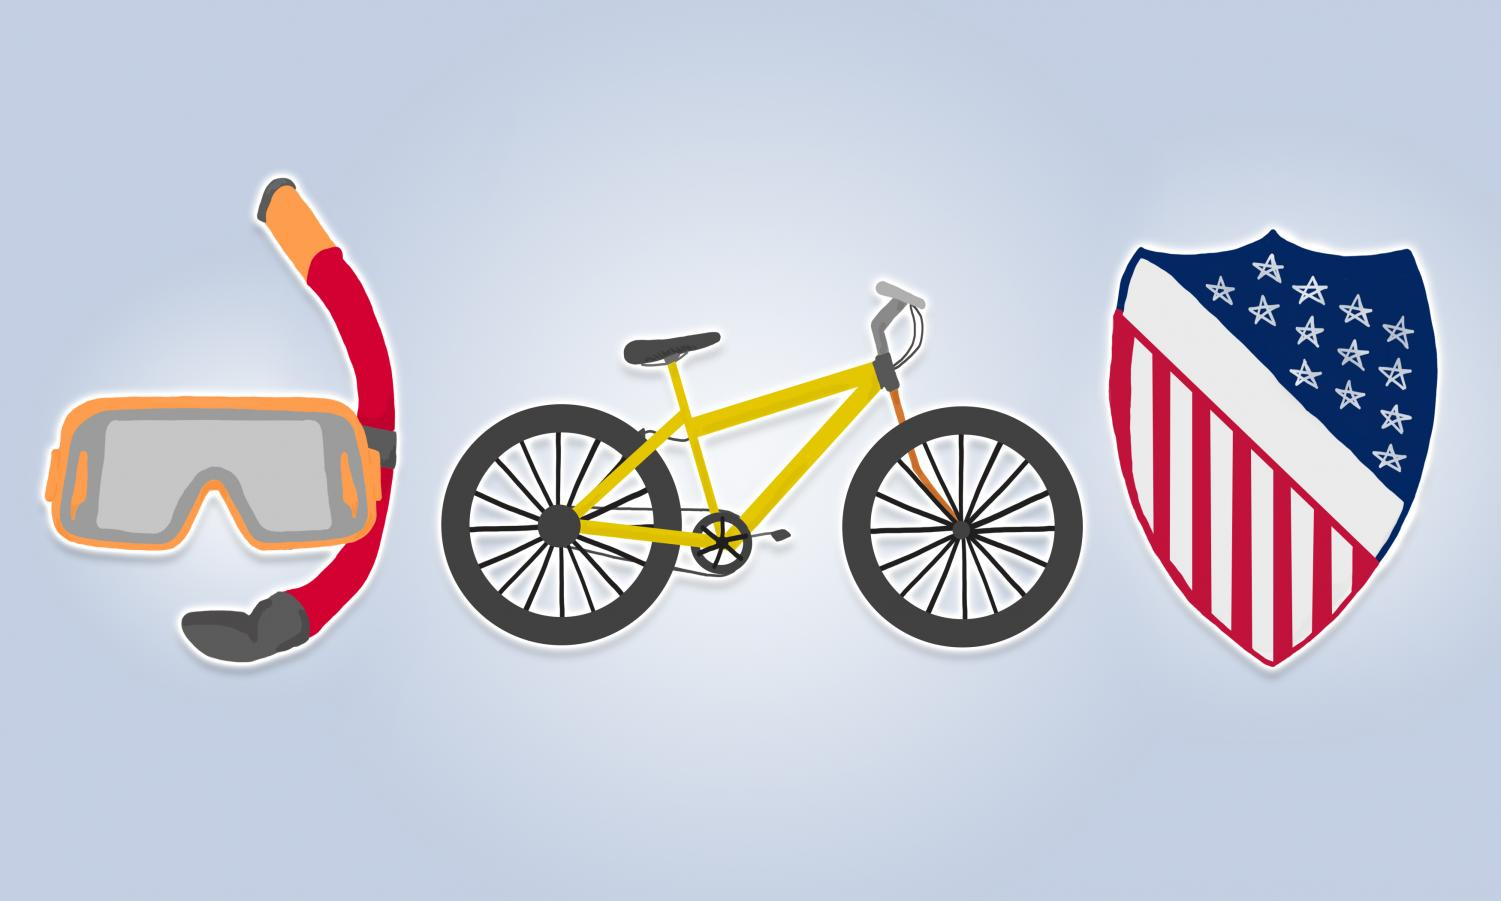 Scuba Club, Cycling Club and The League Of United Latin American Citizens illustrations